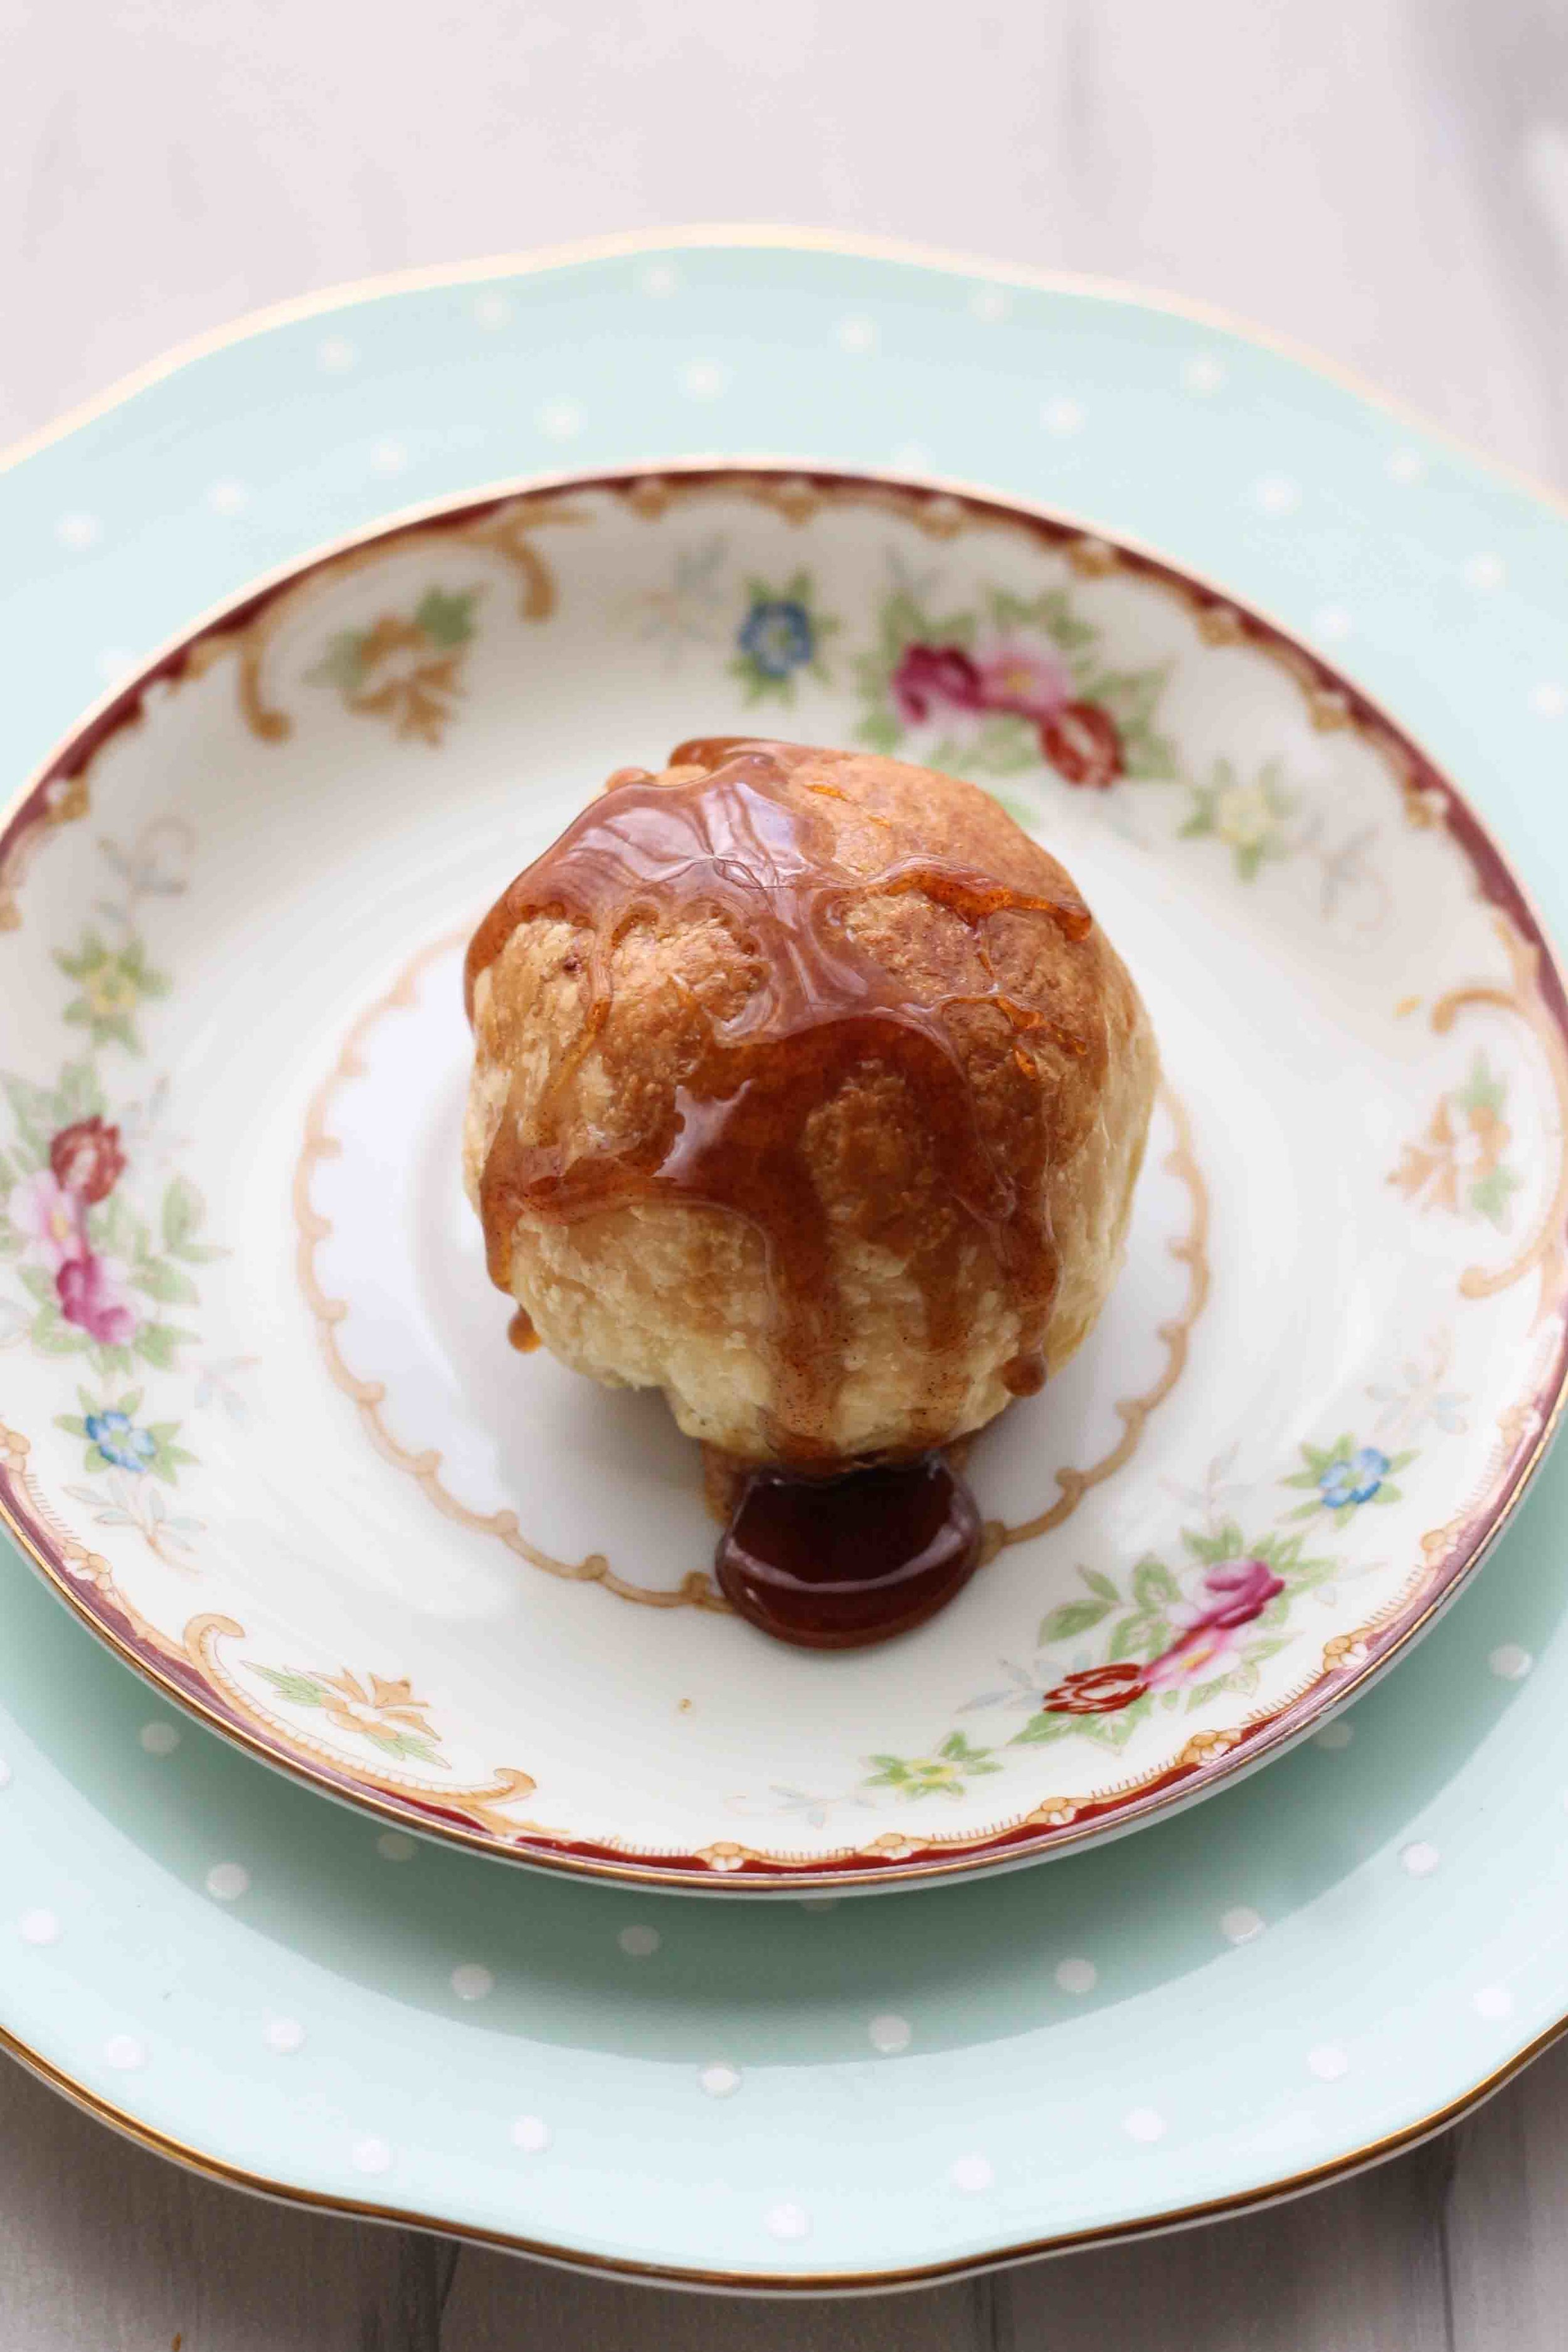 Miniature Almond Brie en Croute with Spiced Honey [ www.pedanticfoodie.com ]